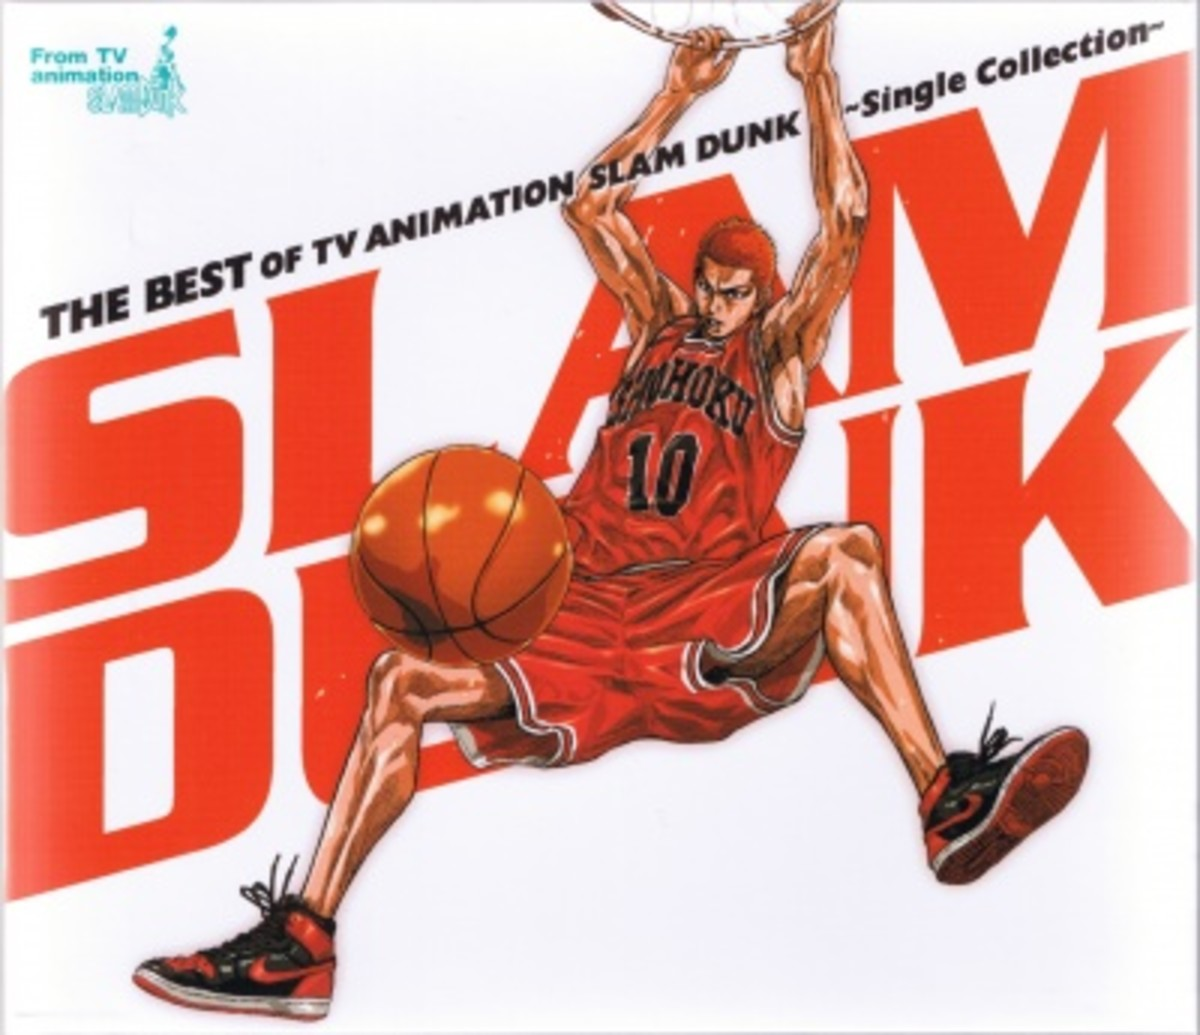 Slam Dunk - The Best of TV Animation Slam Dunk - Single Collection OST